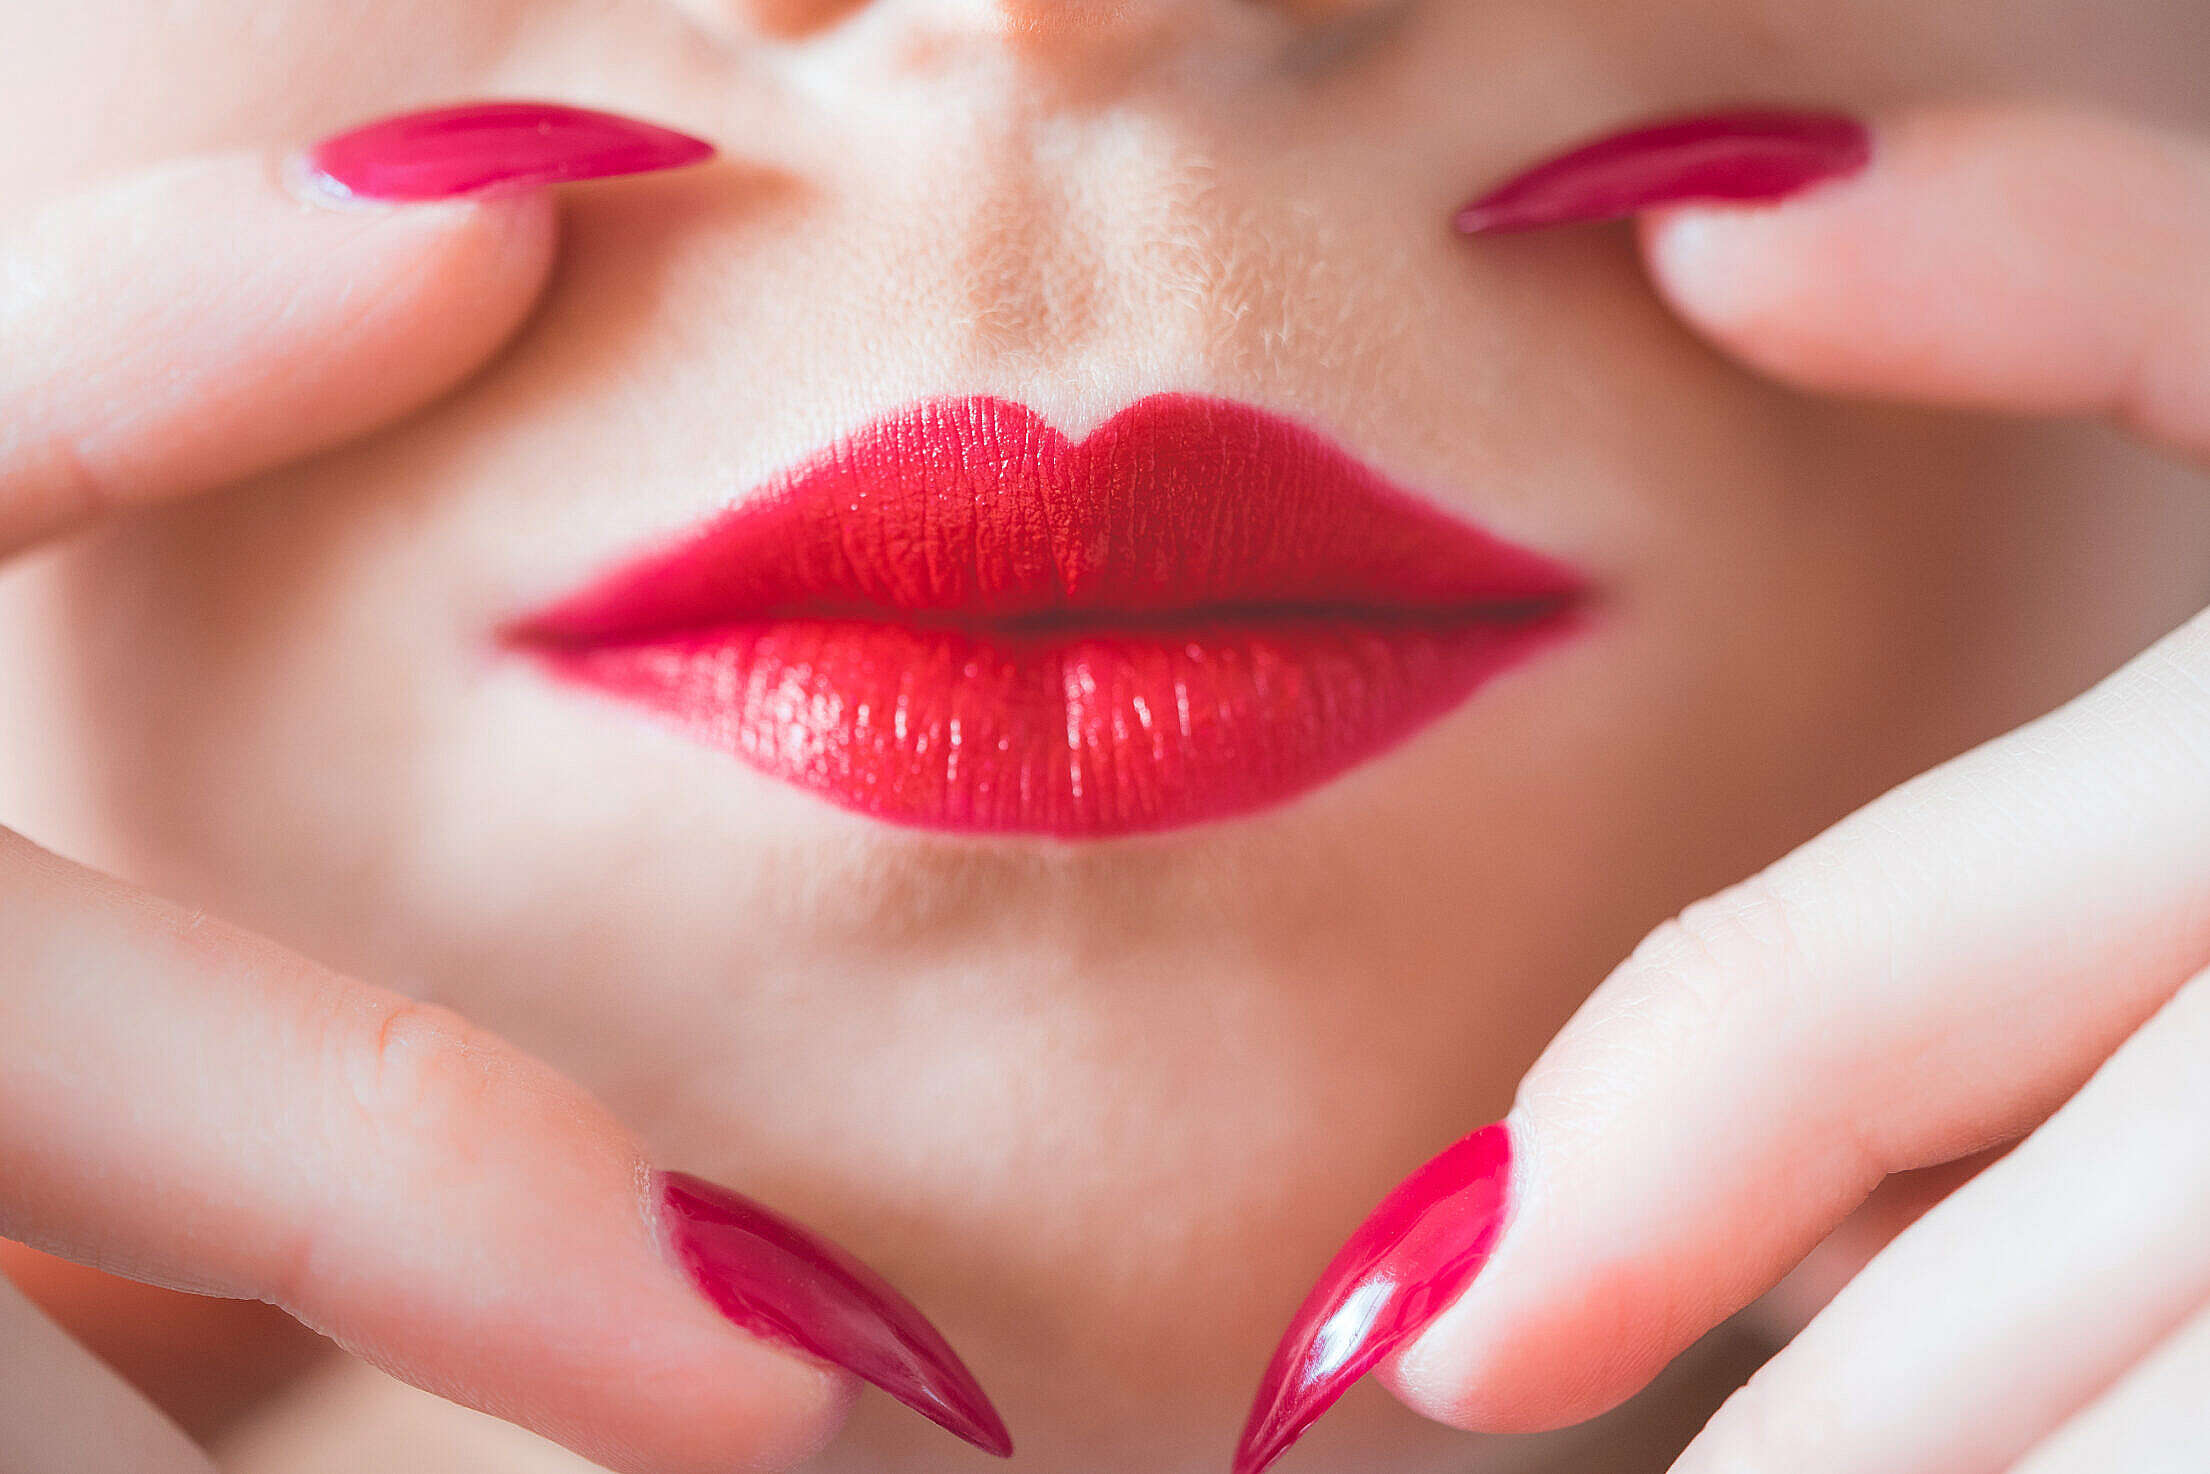 Beauty Perfect Red Lips and Nail Design Free Stock Photo